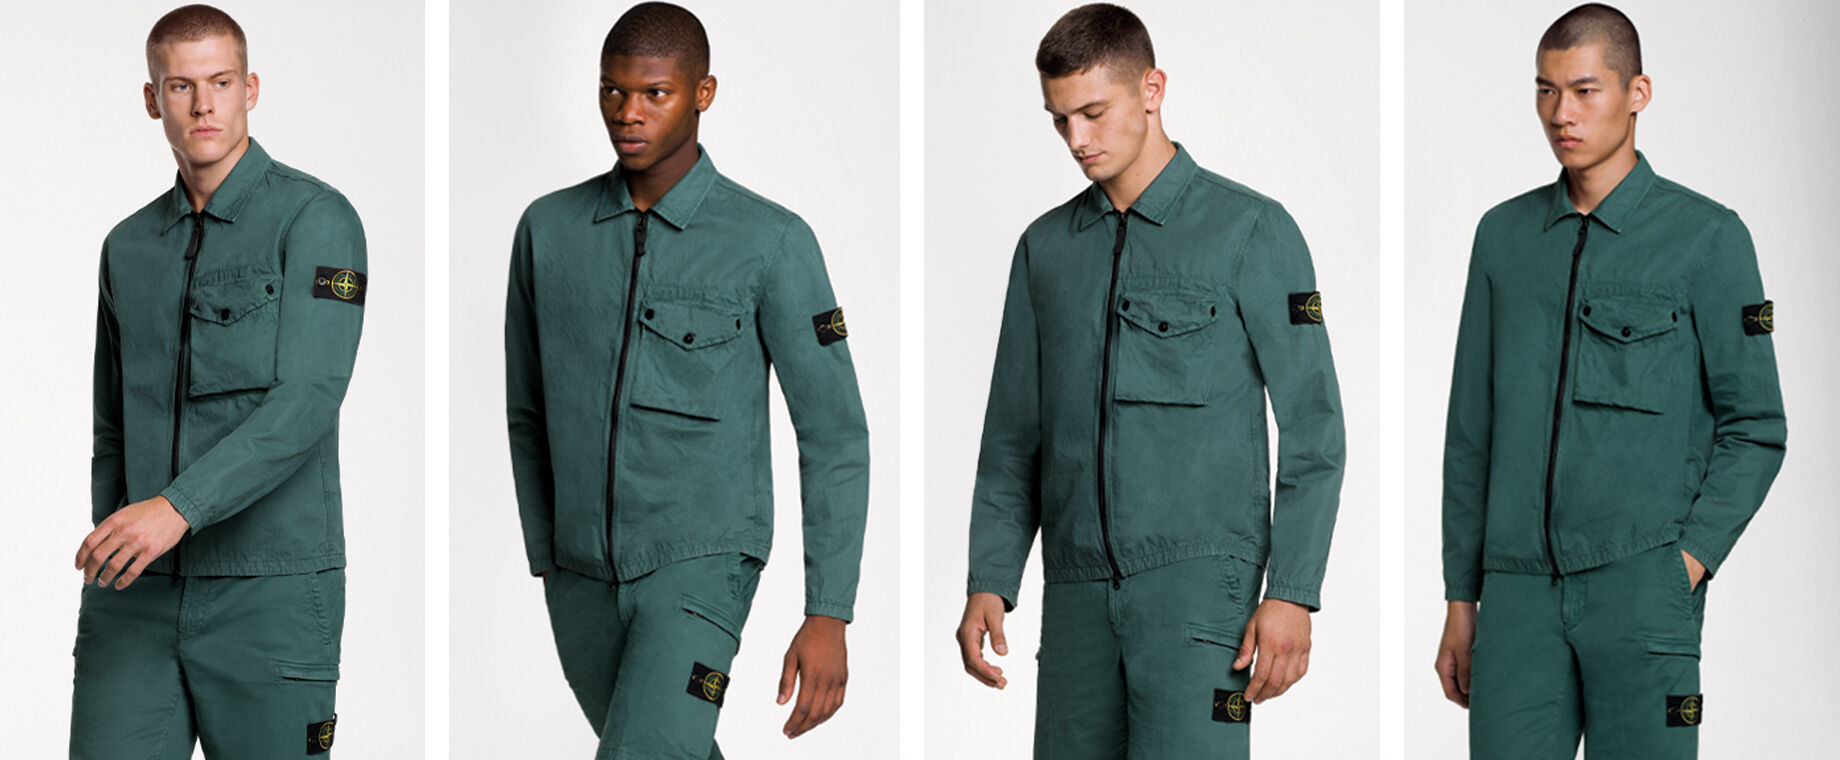 Four models wearing the same outfit, consisting of dark green shorts and a matching overshirt with two way zipper fastening, a bellows pocket with flap and snaps on the chest and the Stone Island badge on the upper left arm.